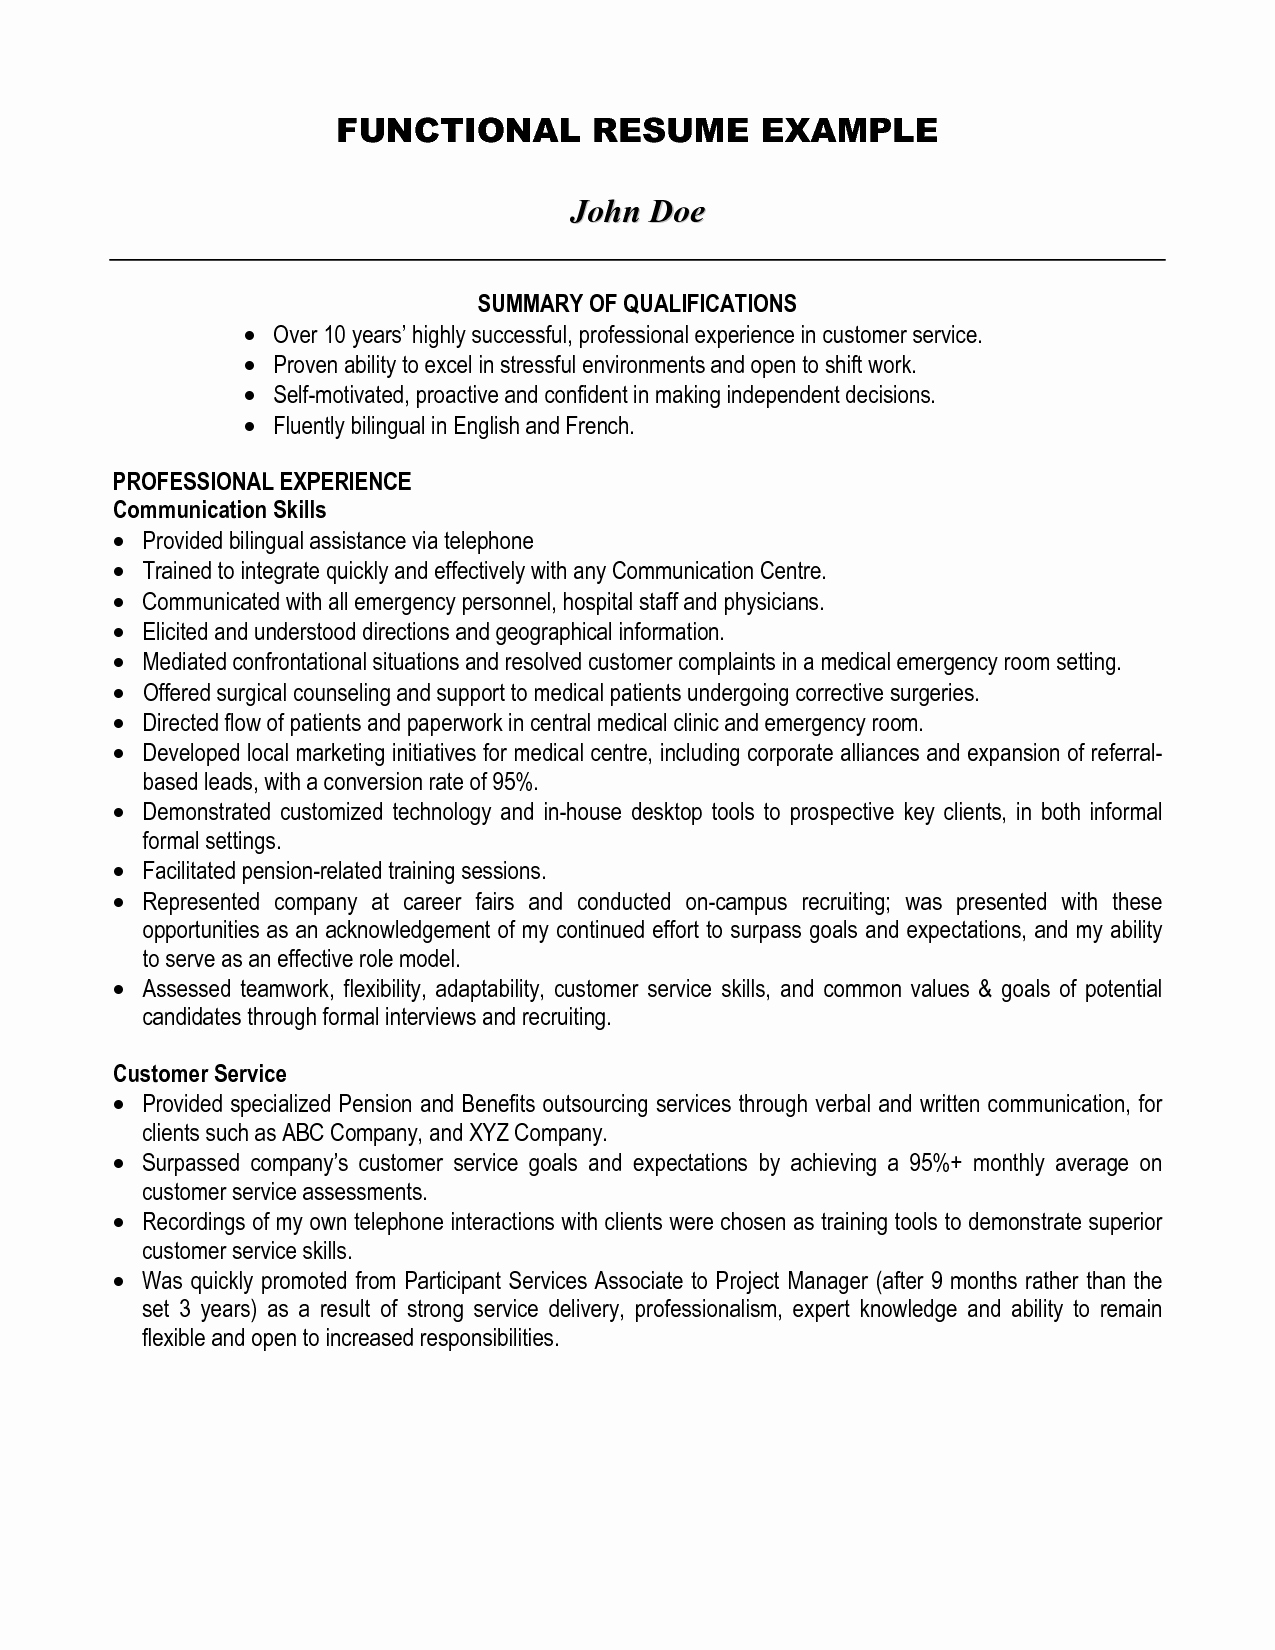 Statement Of Qualifications Template Free Inspirational Professional Qualifications for Resume Resume Ideas